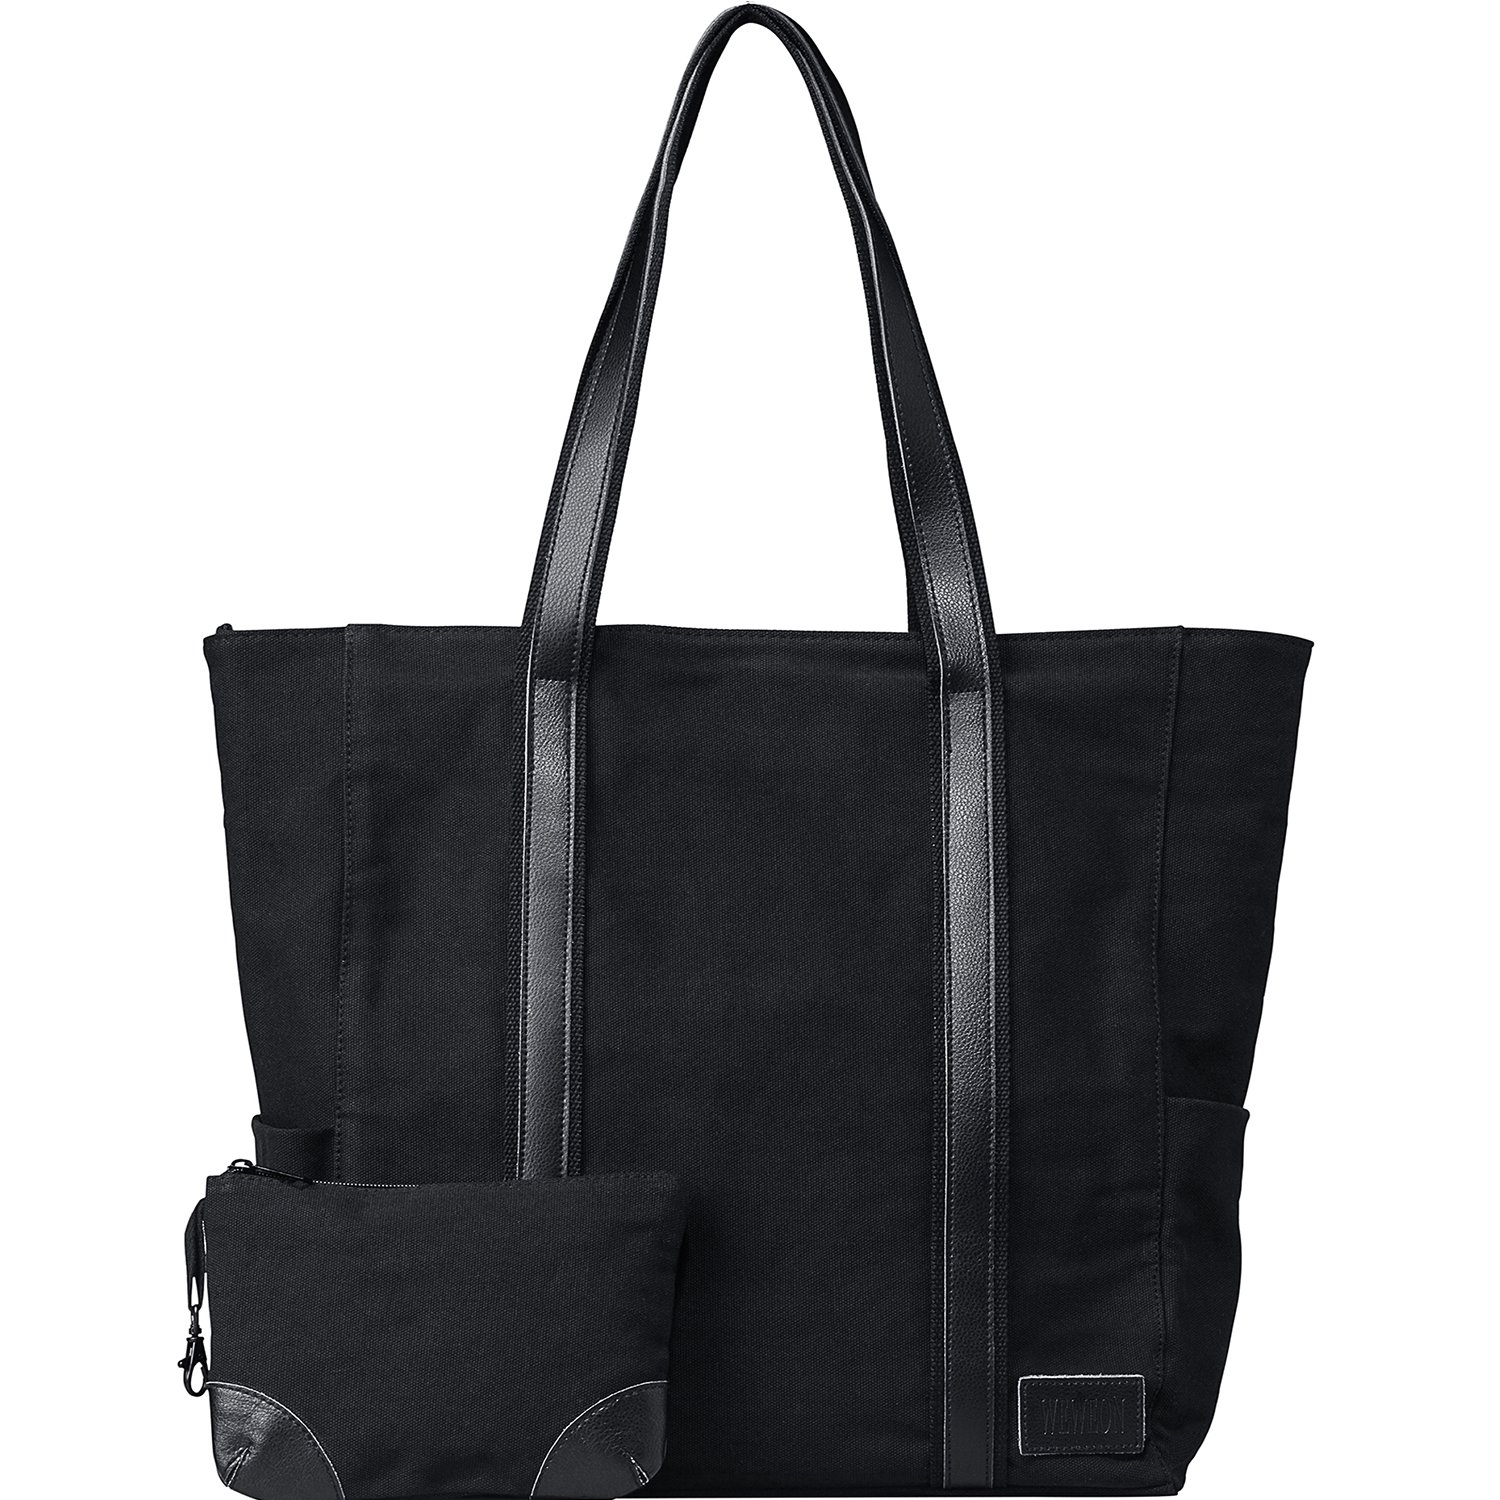 Womens Laptop Bag 17 inch - Larger Totes for Work, Teacher, Office, School, Business and Travel